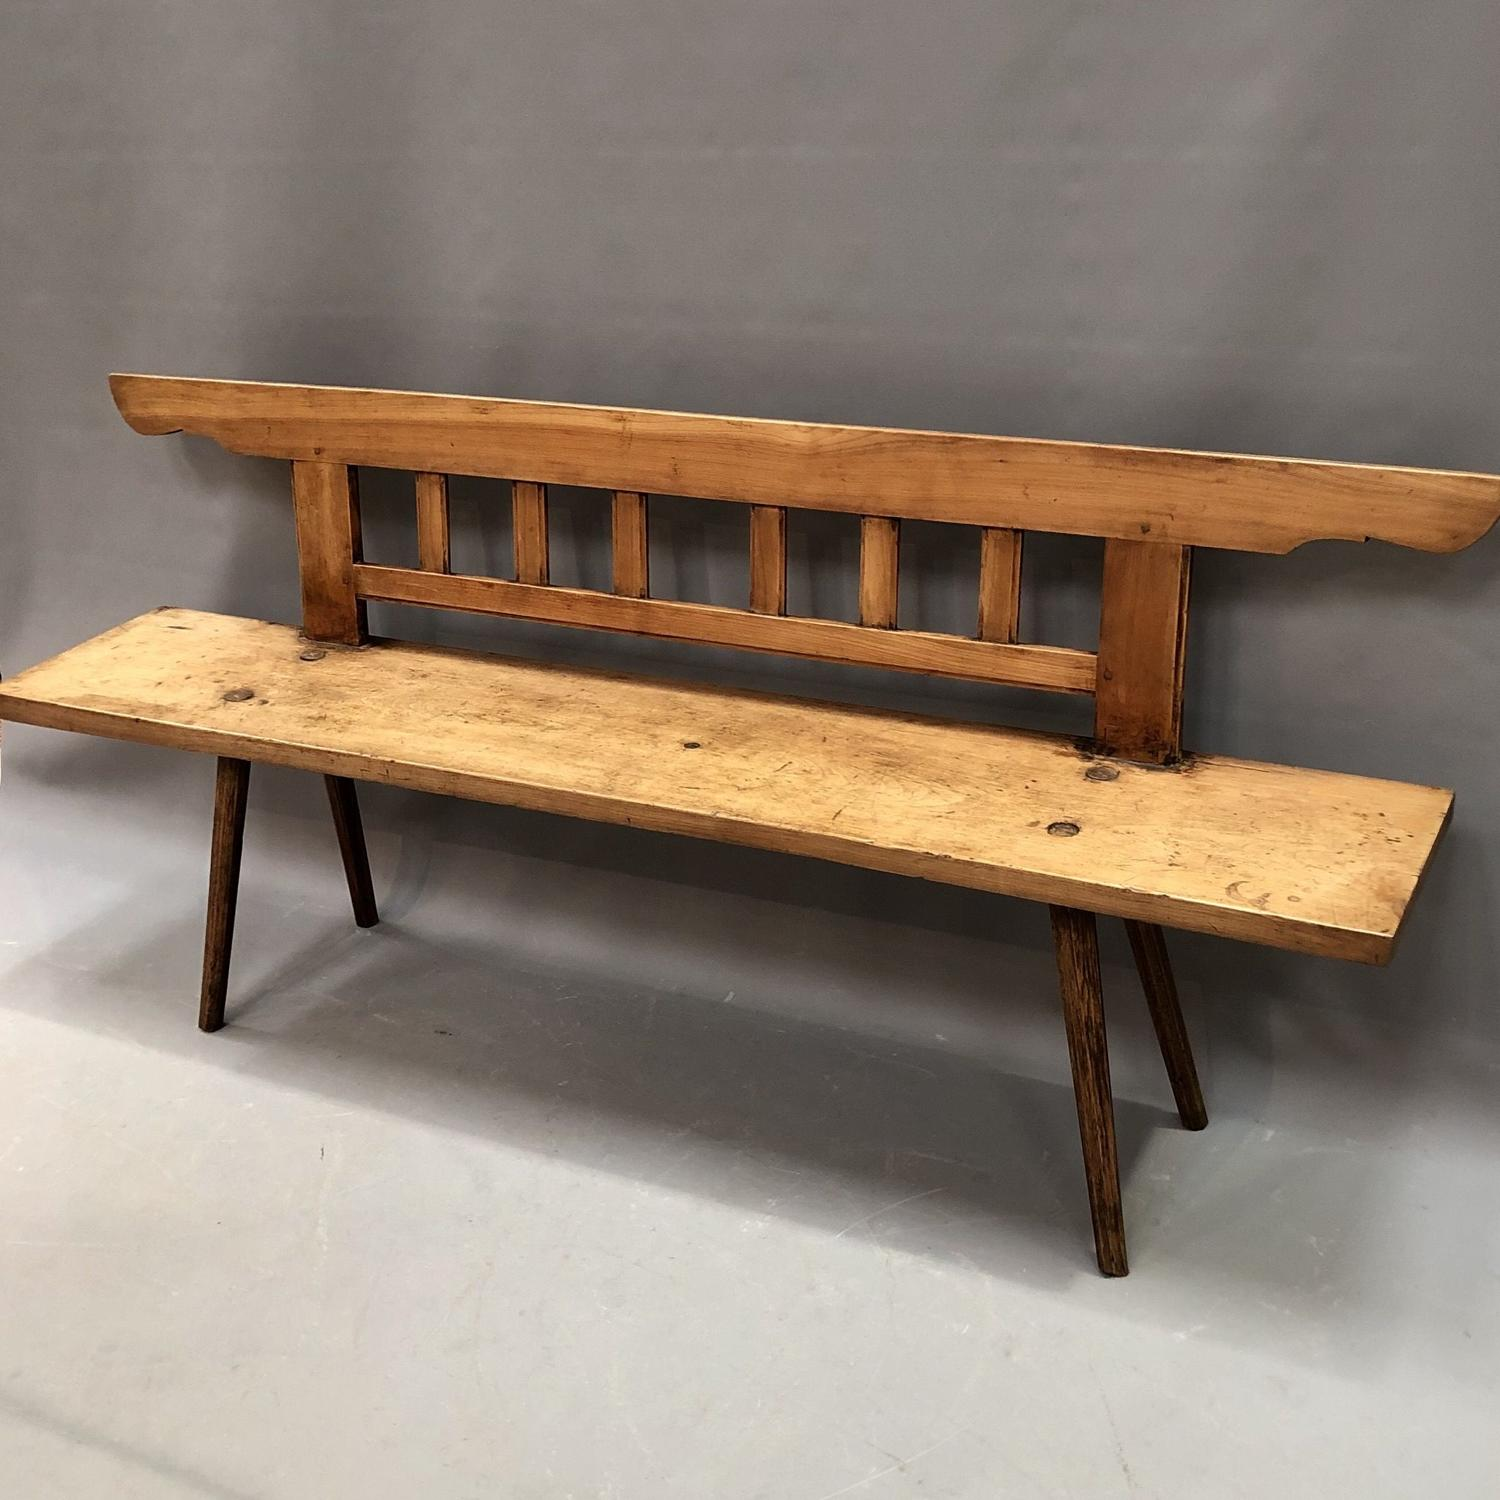 A Spanish Pine bench